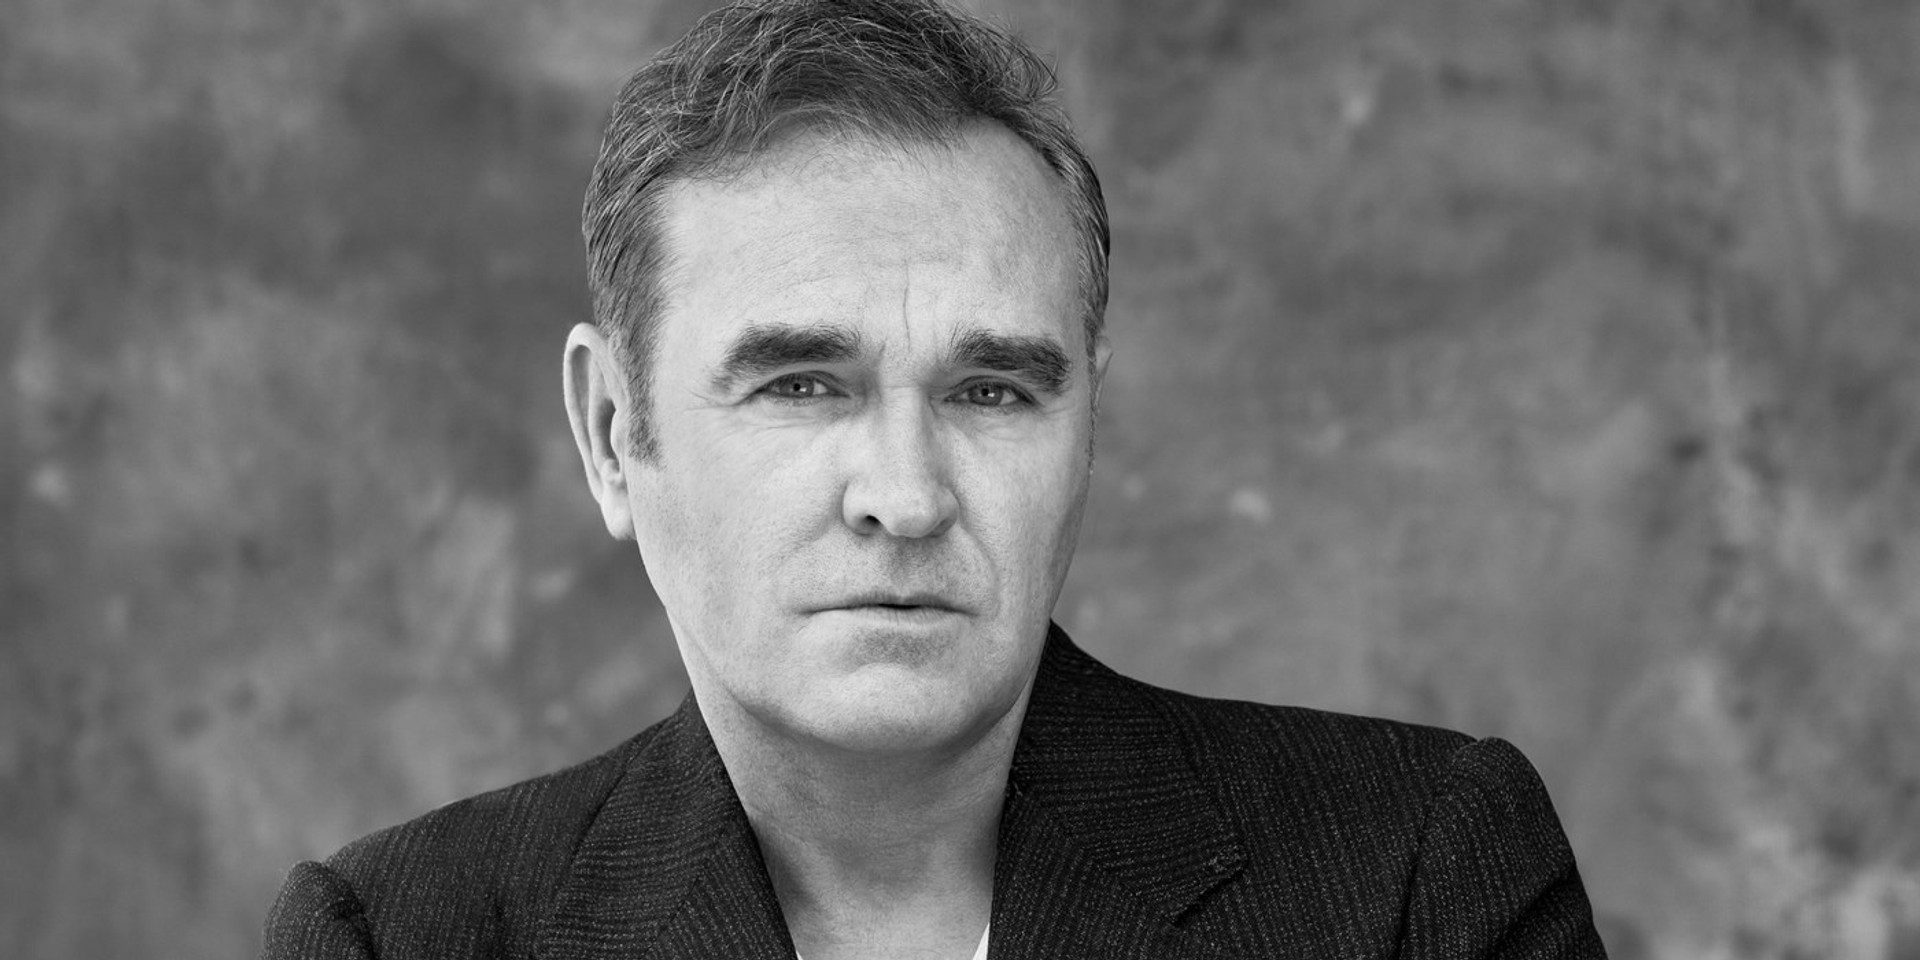 Seems like Morrissey is coming to Singapore after all